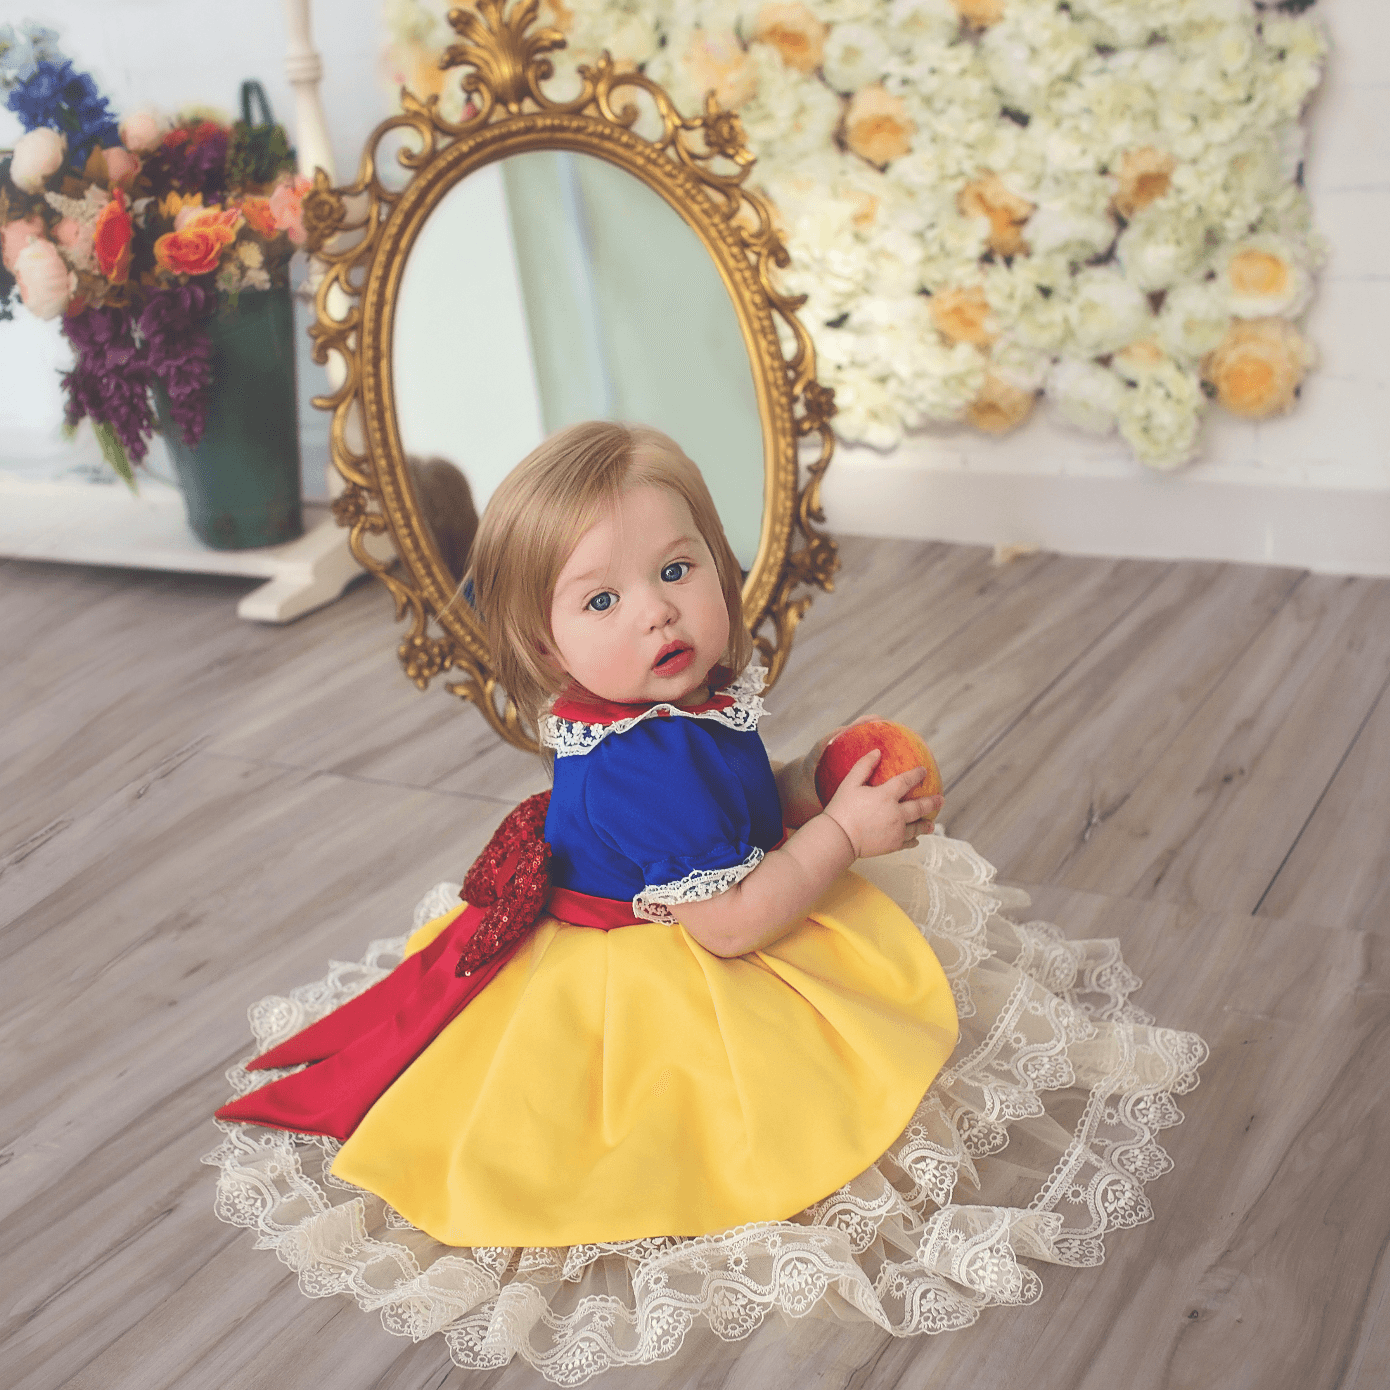 105ad69ee Snow White Inspired Dress - Baby Boutique